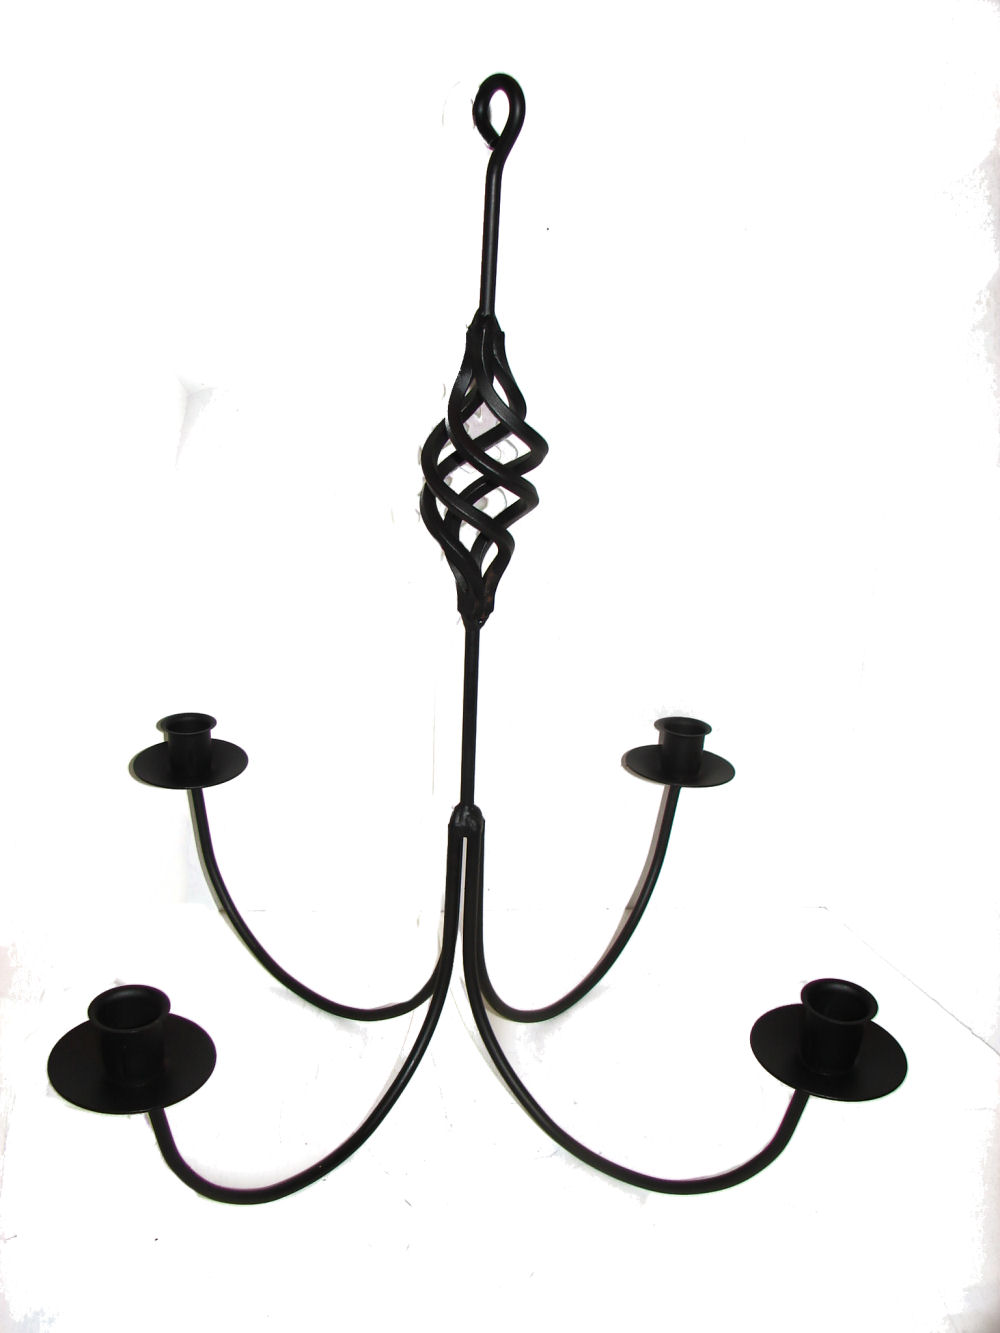 Wrought iron chandeliers and hanging candle holders candoliers the twisted birdcage decoration adds even more charm to this classic design this is solid iron not wire arubaitofo Choice Image